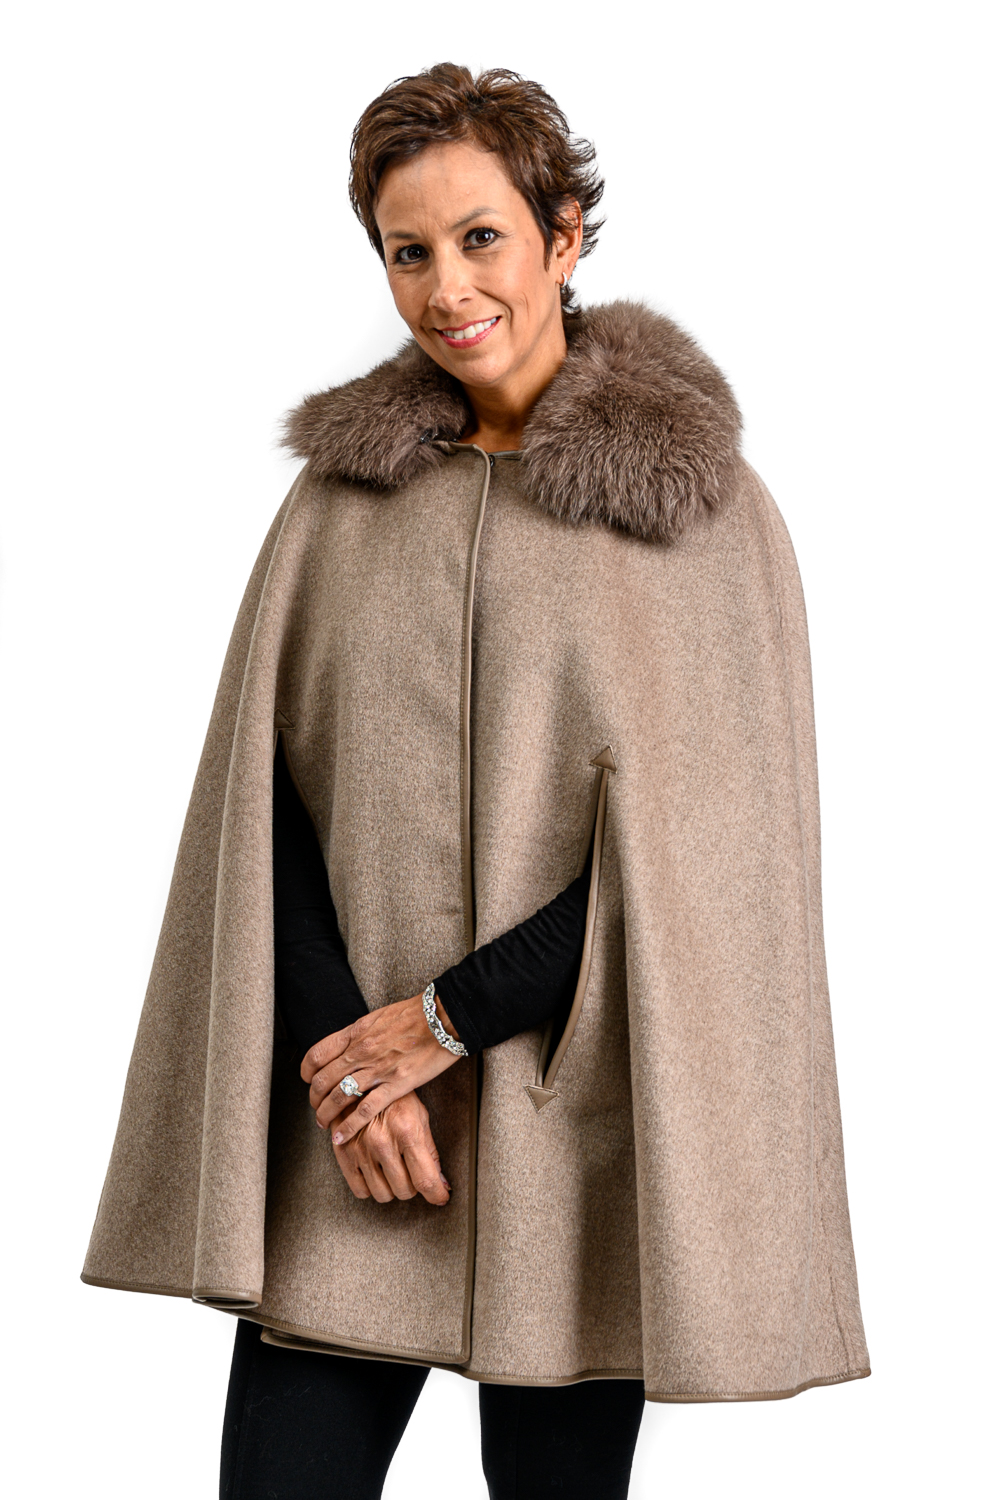 W59 2 Cashmere Cape with Fox Fur